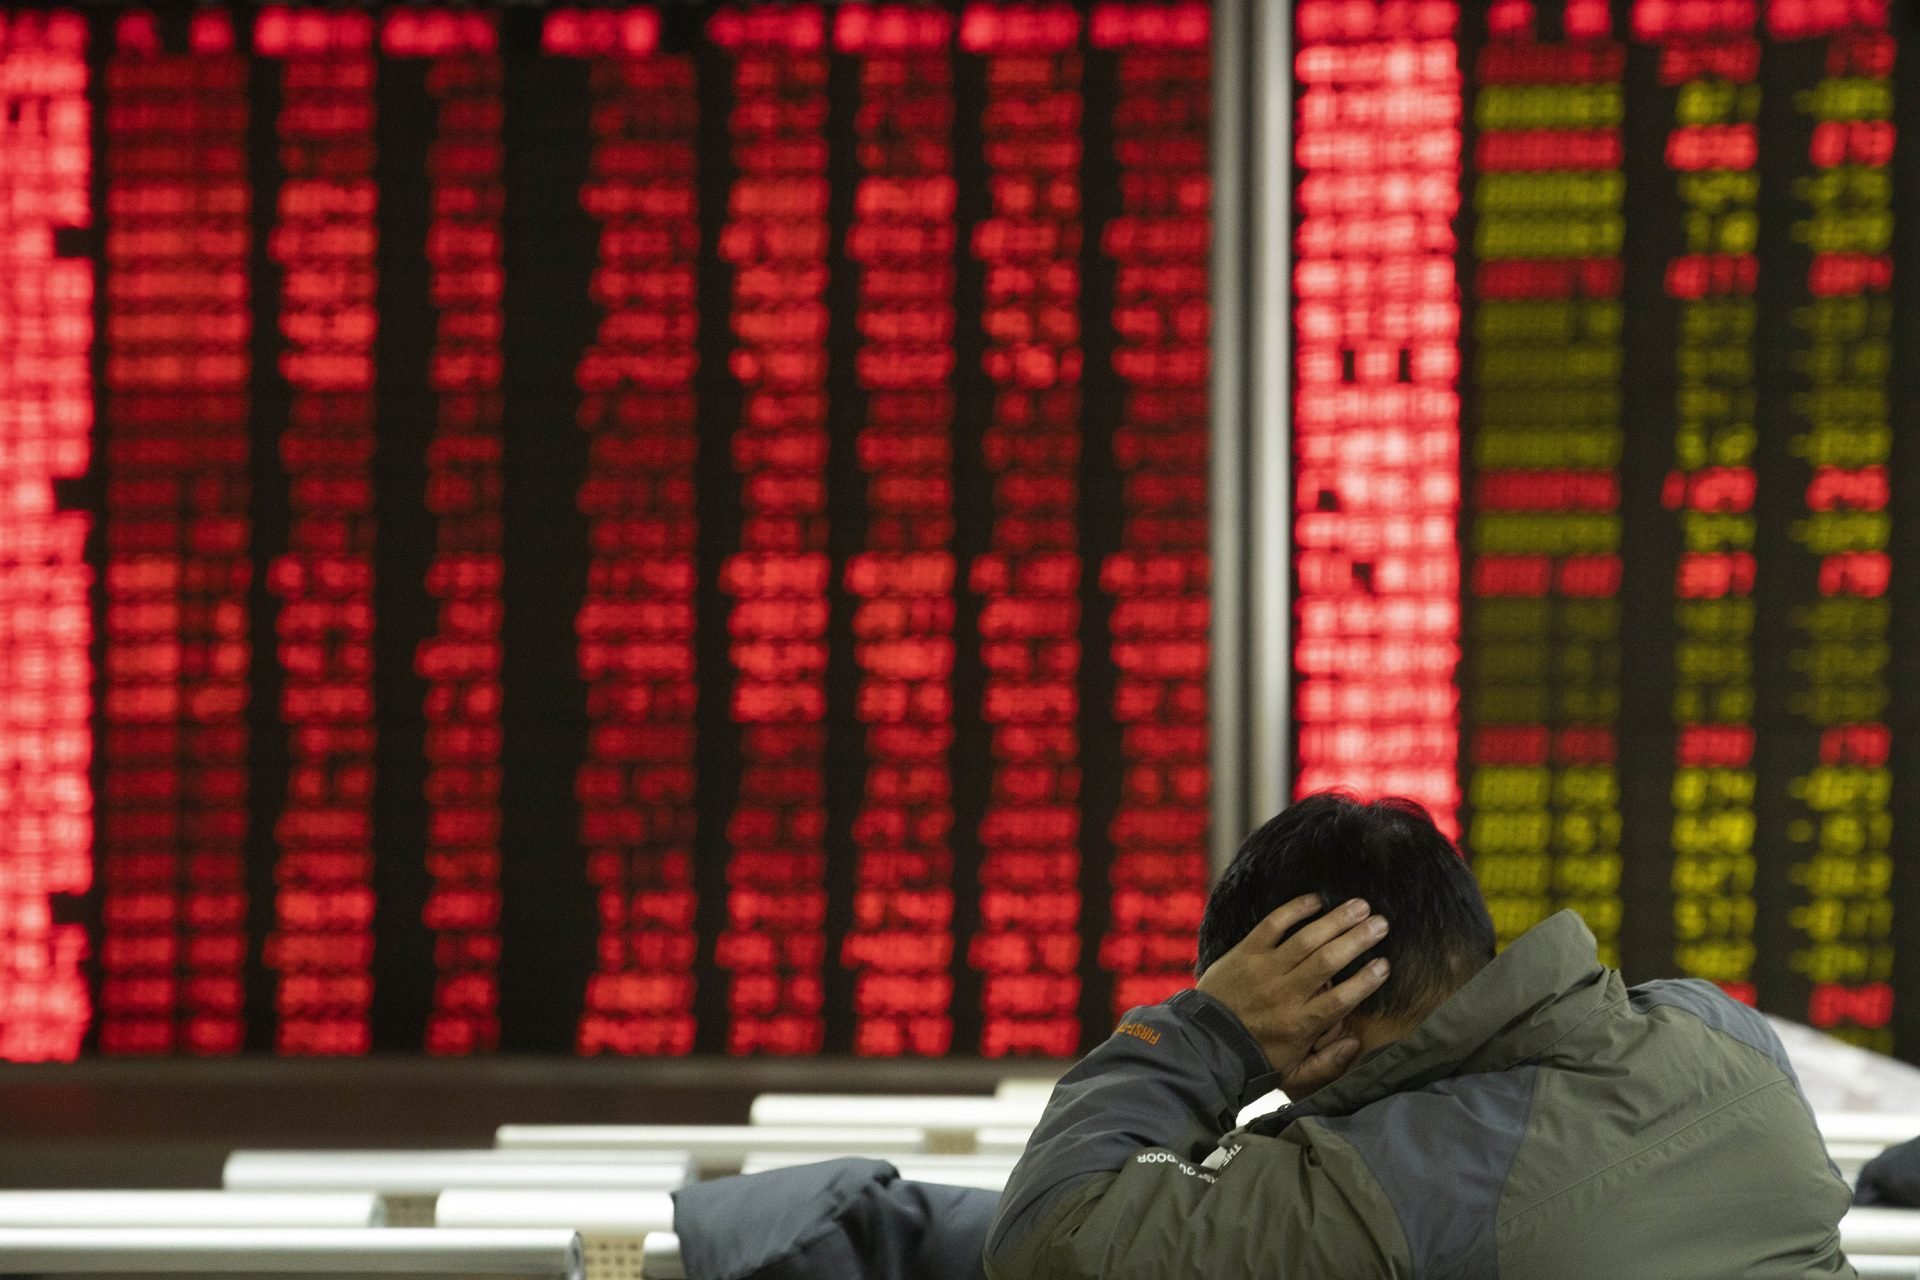 In this Thursday, Dec. 12, 2019, photo, an investor monitors stock prices at a brokerage in Beijing. Shares likewise jumped Friday, Dec. 13, 2019 in Asia following fresh all-time highs overnight on Wall Street spurred by optimism that the U.S. and China are close to reaching a deal to end their costly trade war.